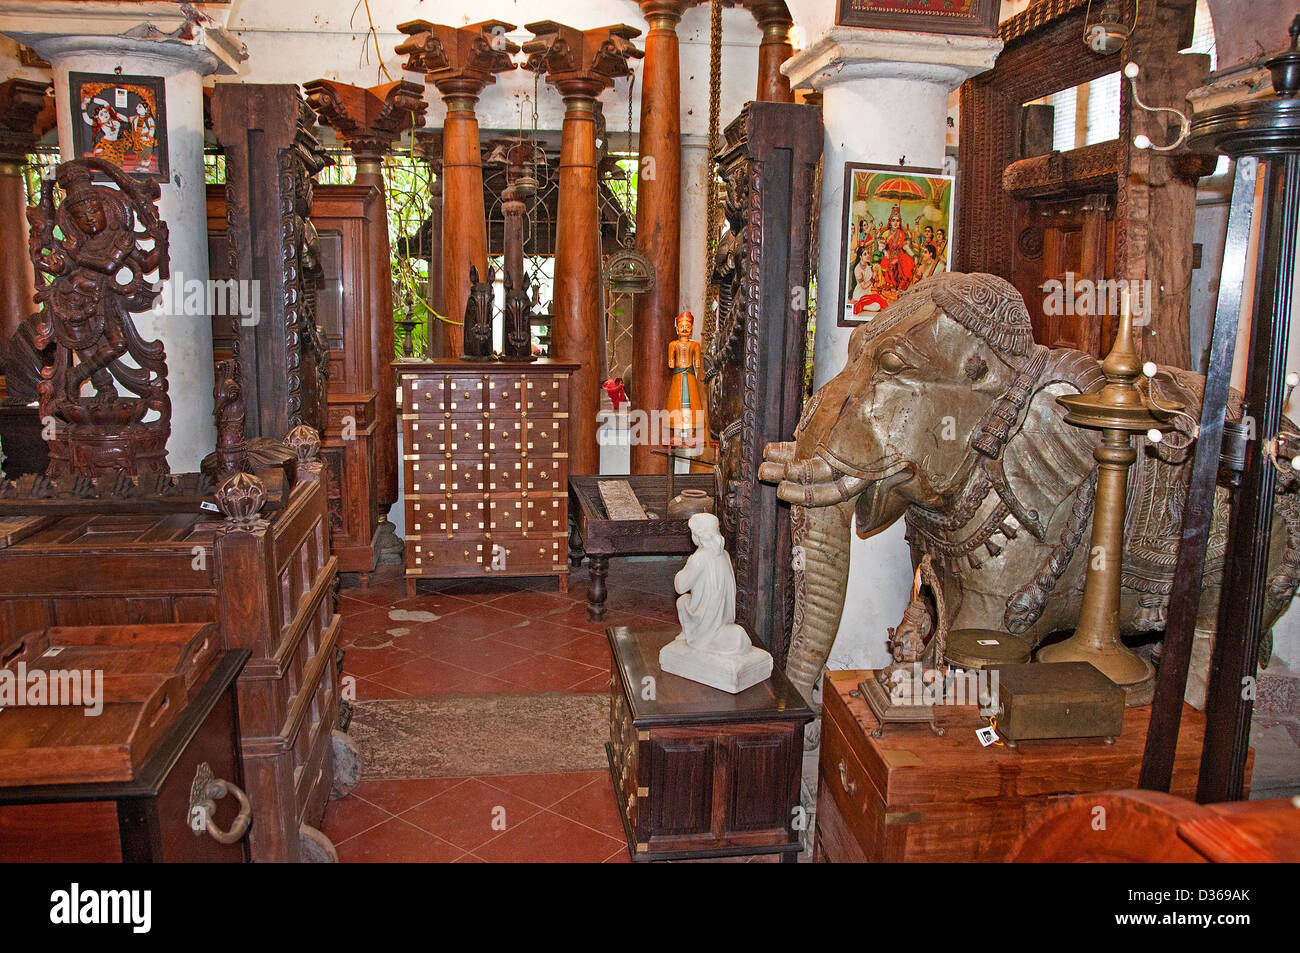 Antique Shop Tavikneswaran Geerhanjaky Puducherry ( Pondicherry ) India  Tamil Nadu - Antique Shop Tavikneswaran Geerhanjaky Puducherry ( Pondicherry